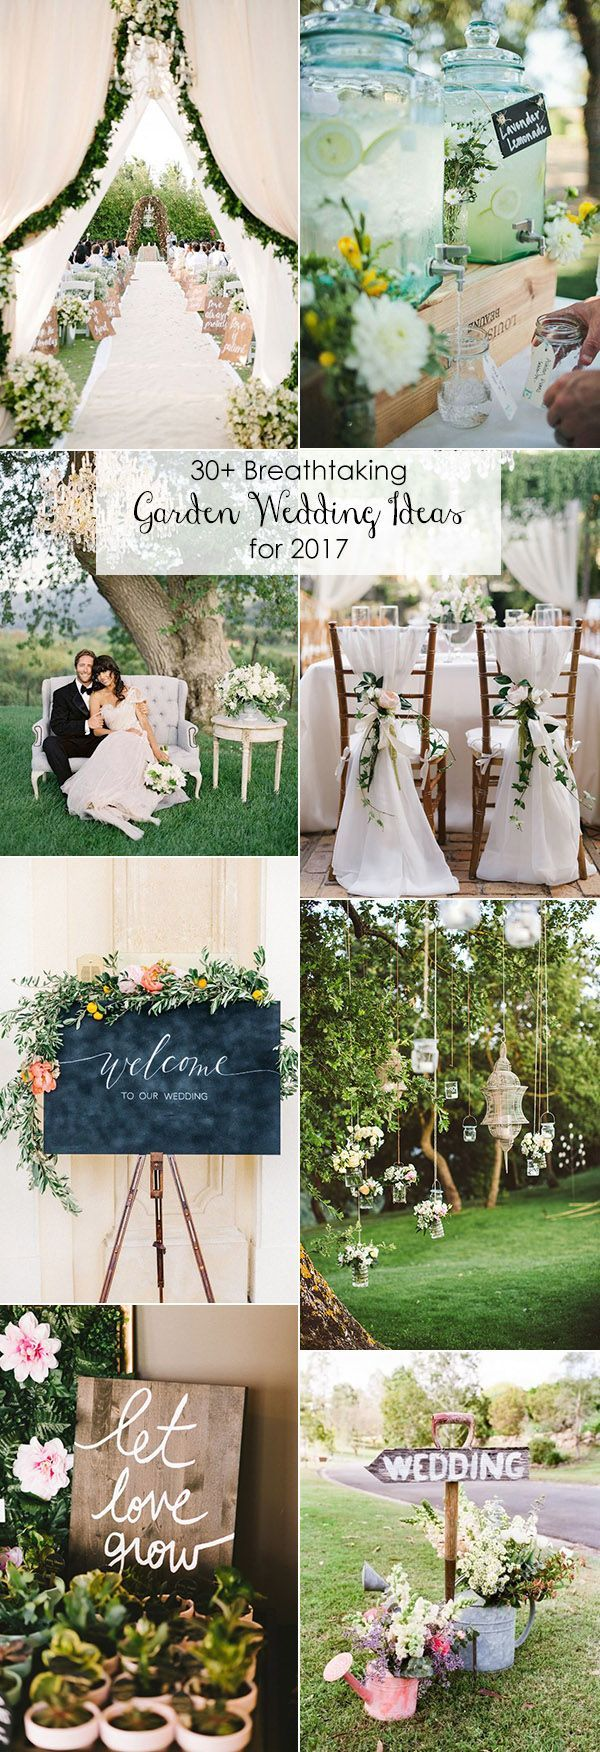 326 best Rustic Farmhouse and Outdoor Wedding Ideas images on ...